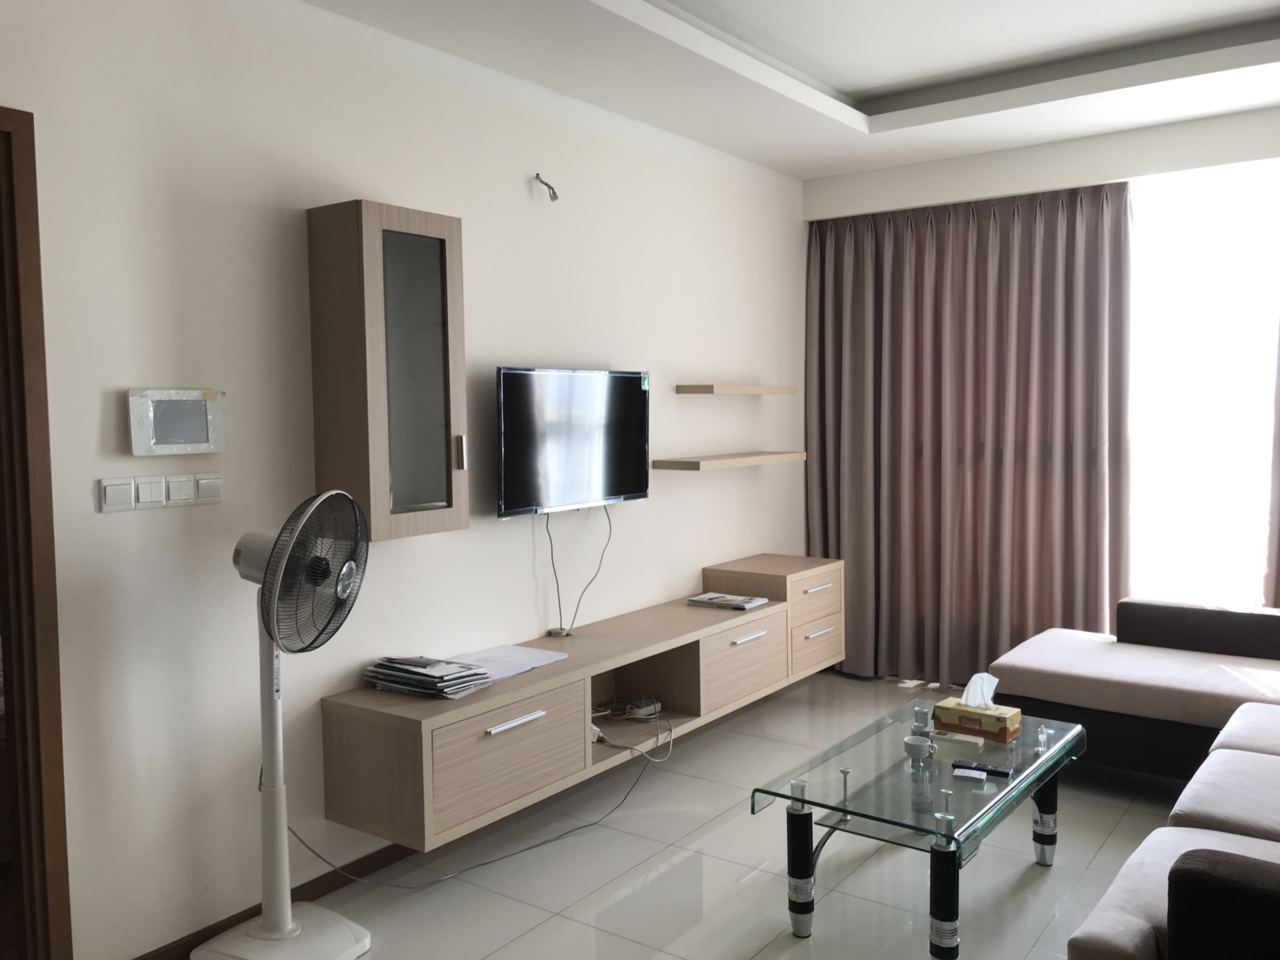 Thaodien pearl apartment for rent in district 2 hcmc D204125 (1)